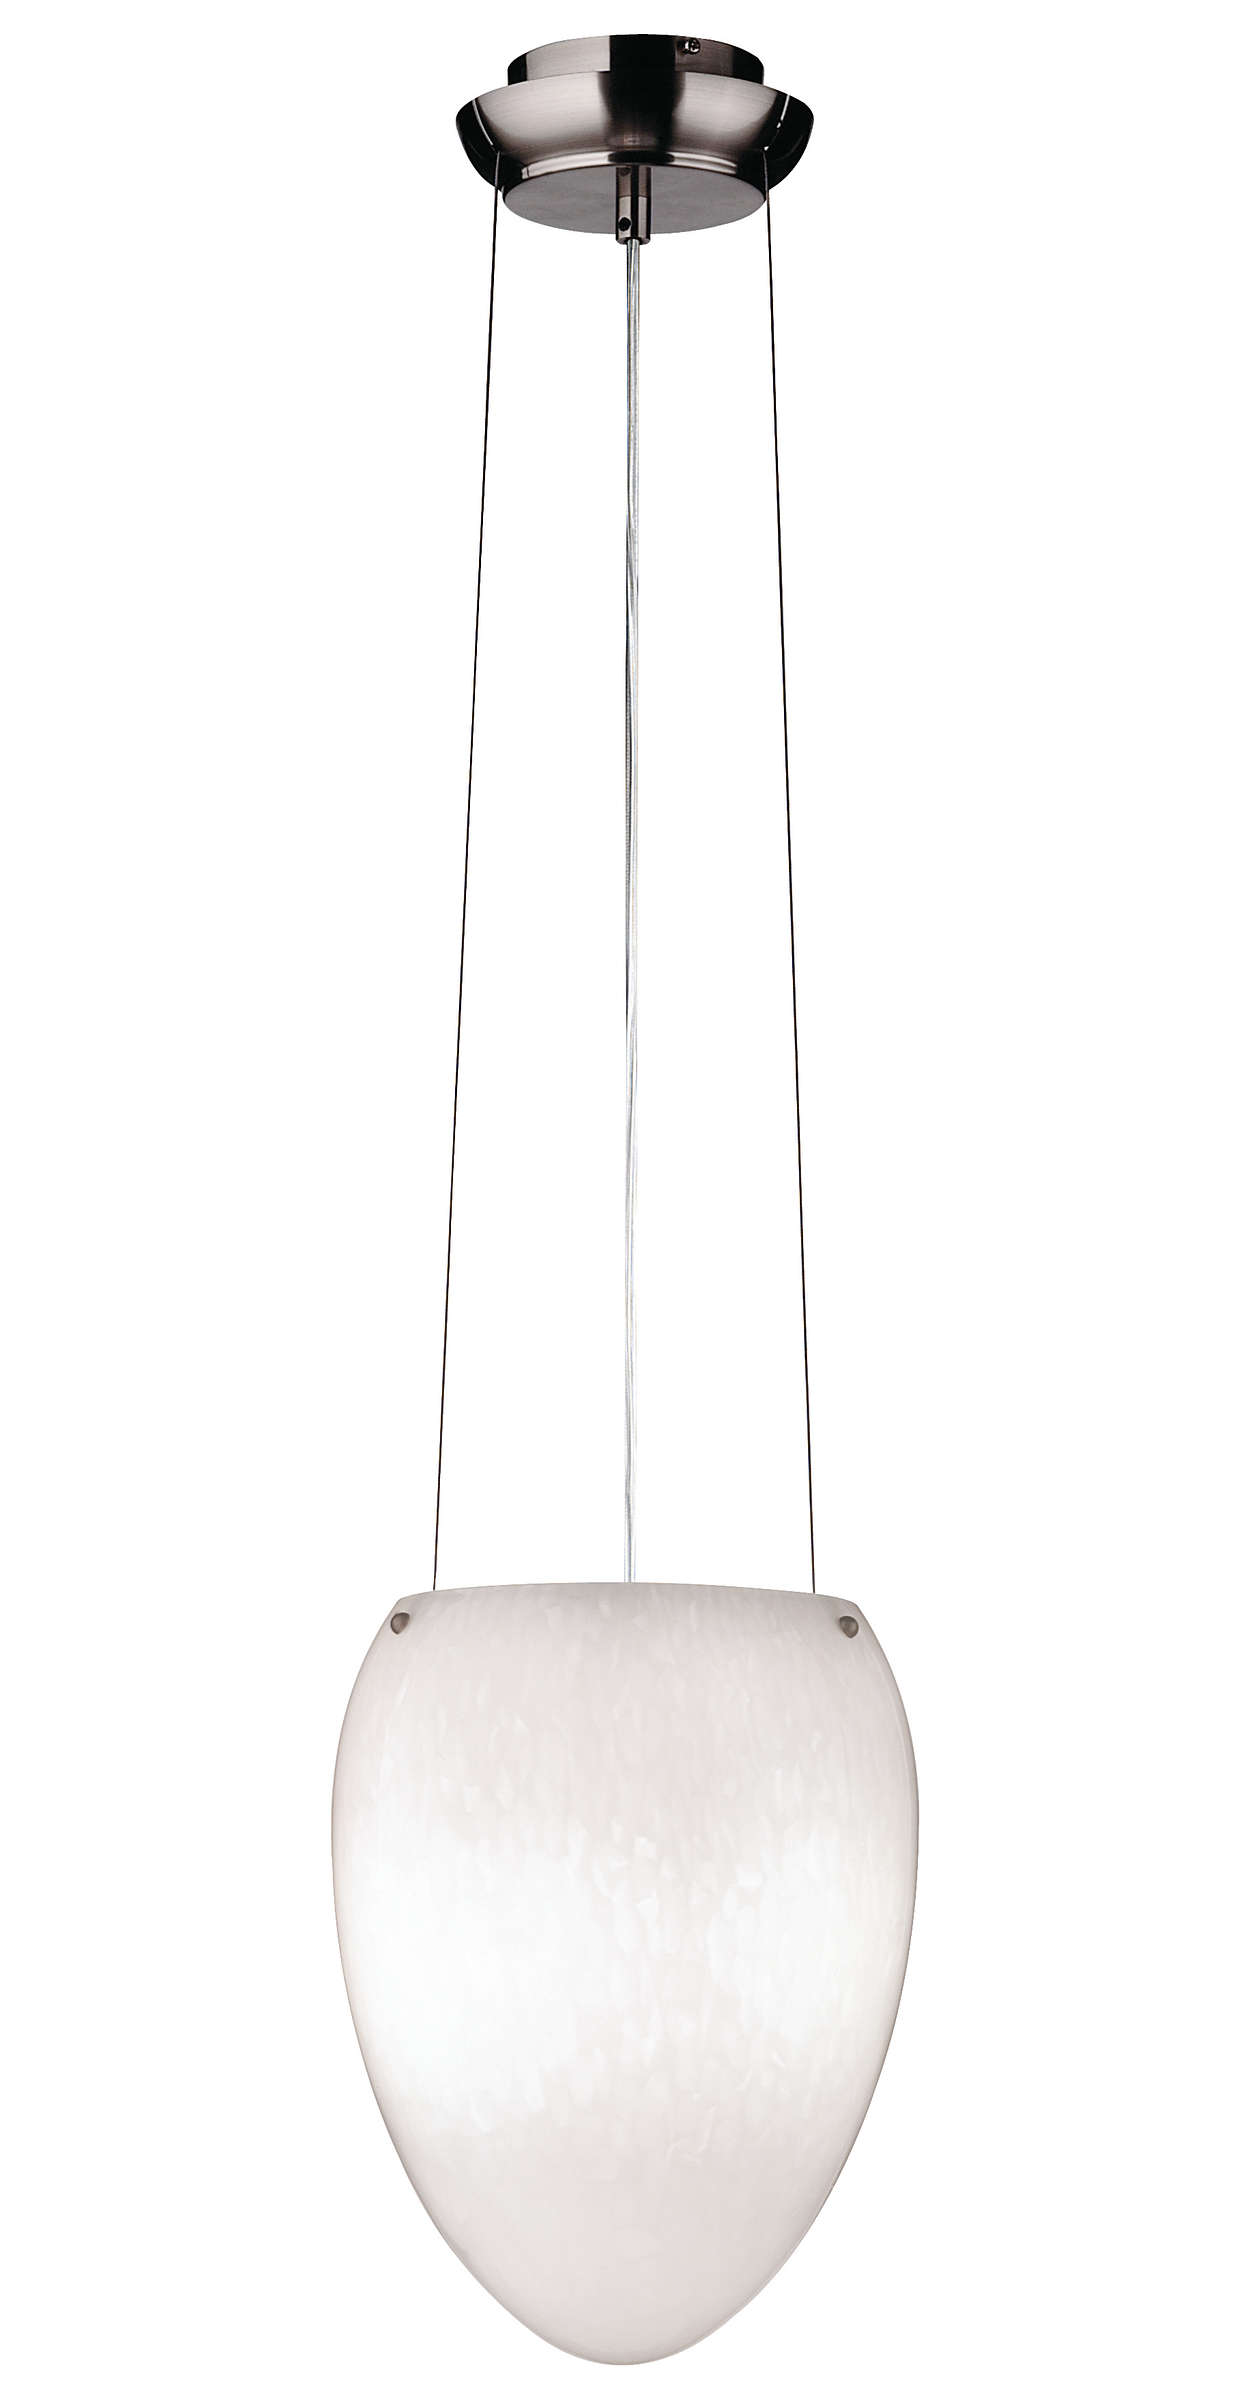 Madison 1-light Chandelier in Satin Nickel finish